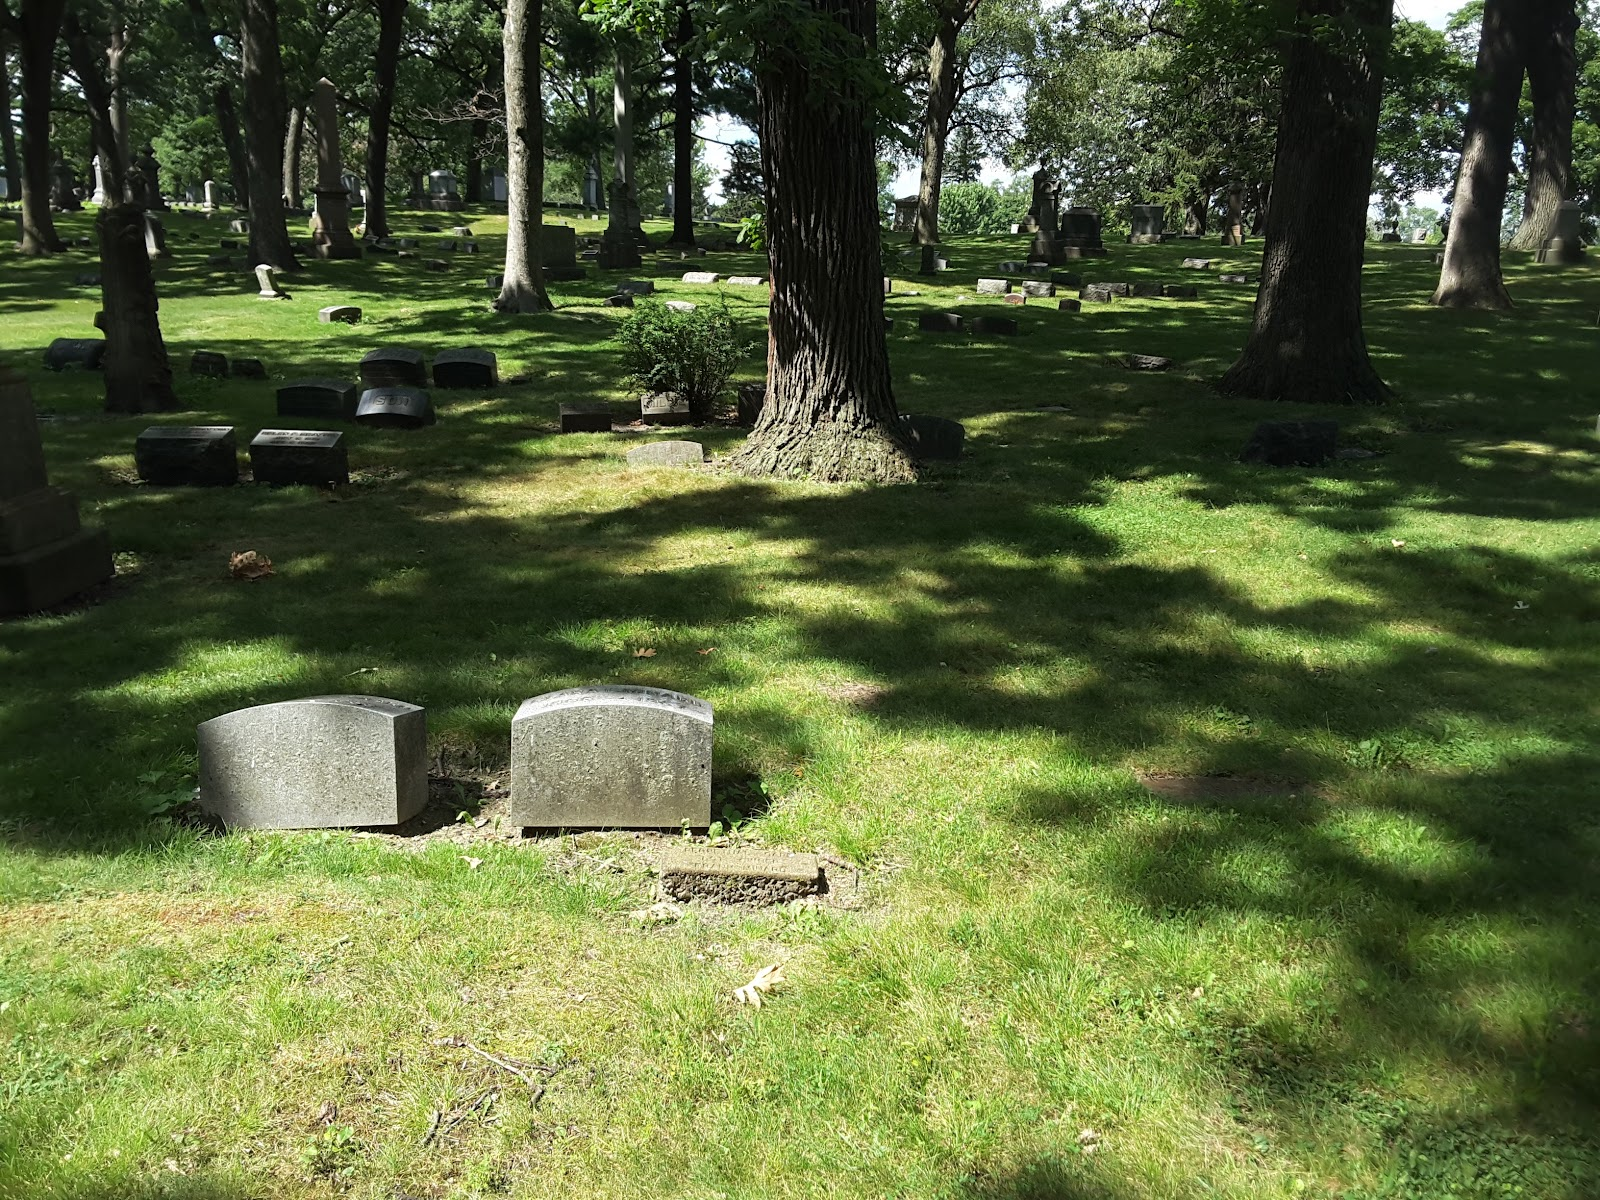 Minards were reinterred at Mount Greenwood Cemetery in Chicago; Lot 9 Section 11 on August 29, 1889.